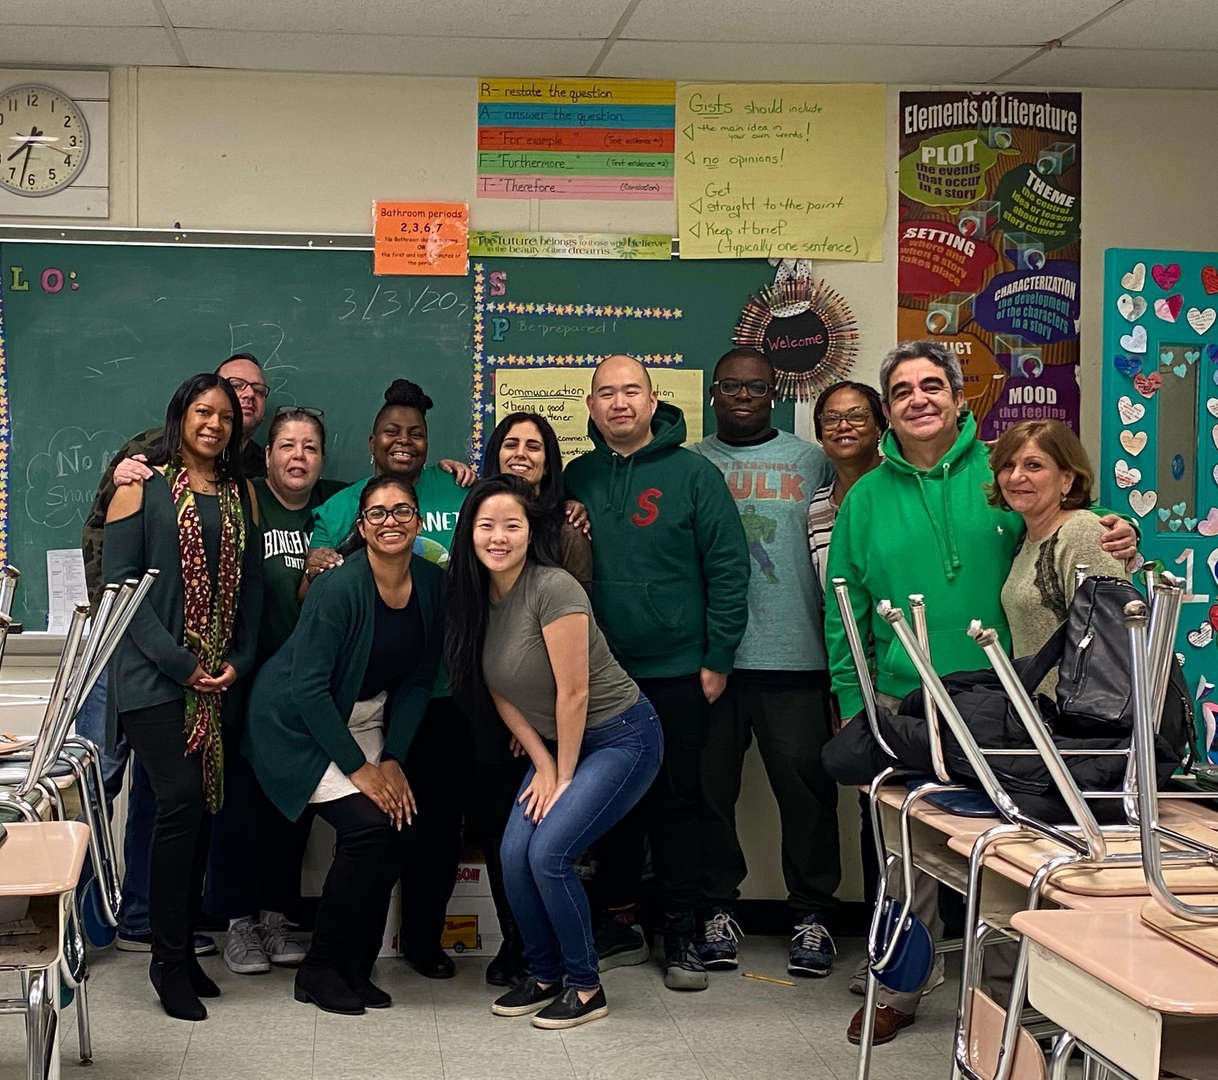 Teachers wearing green pose for a picture